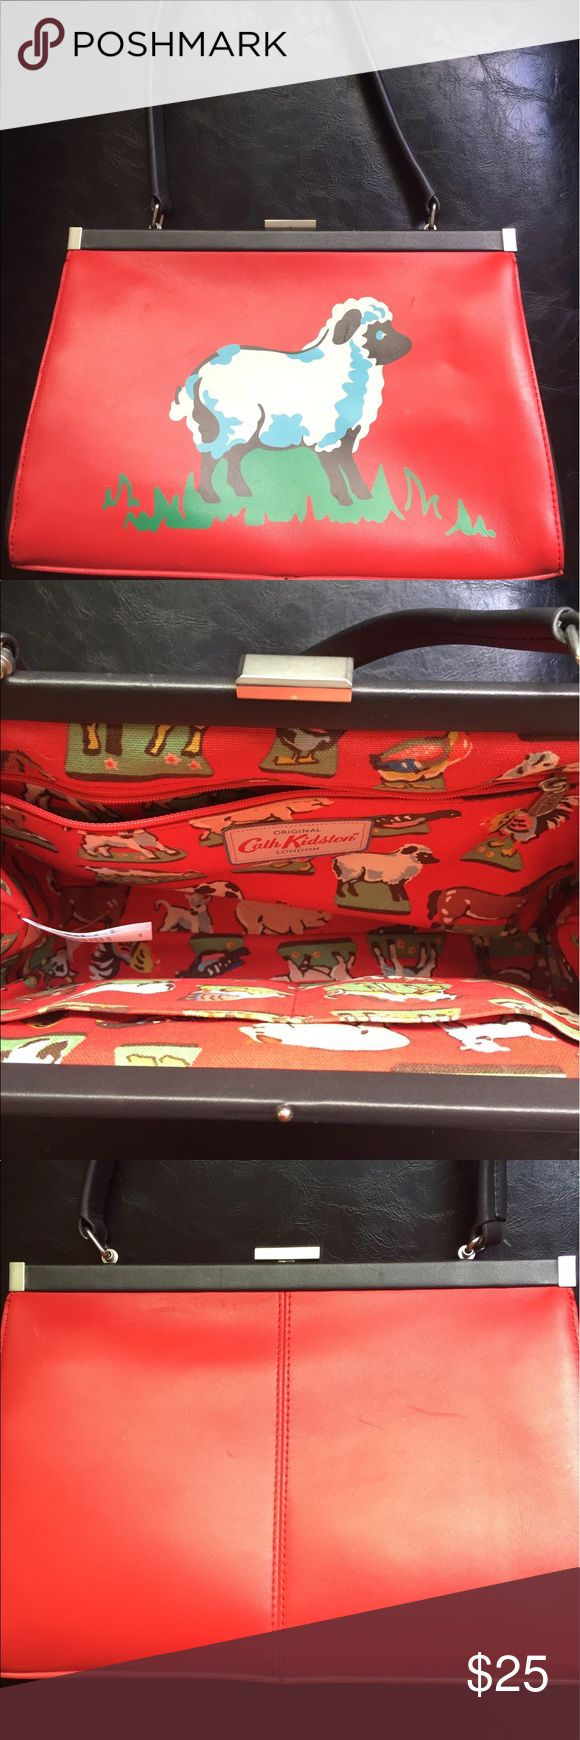 Red Leather Cath Kidston Purse Handbag with Lamb For sale is a red leather lamb Cath Kidston brand purse. The sheep motif has a slight scratch on it and there are a couple other very minor scratches on the bag, please see photos. Lined with a cheery cotton canvas, has an interior zip pocket, and a snap closure. Non-smoking home. Thanks for looking! Cath Kidston Bags Shoulder Bags